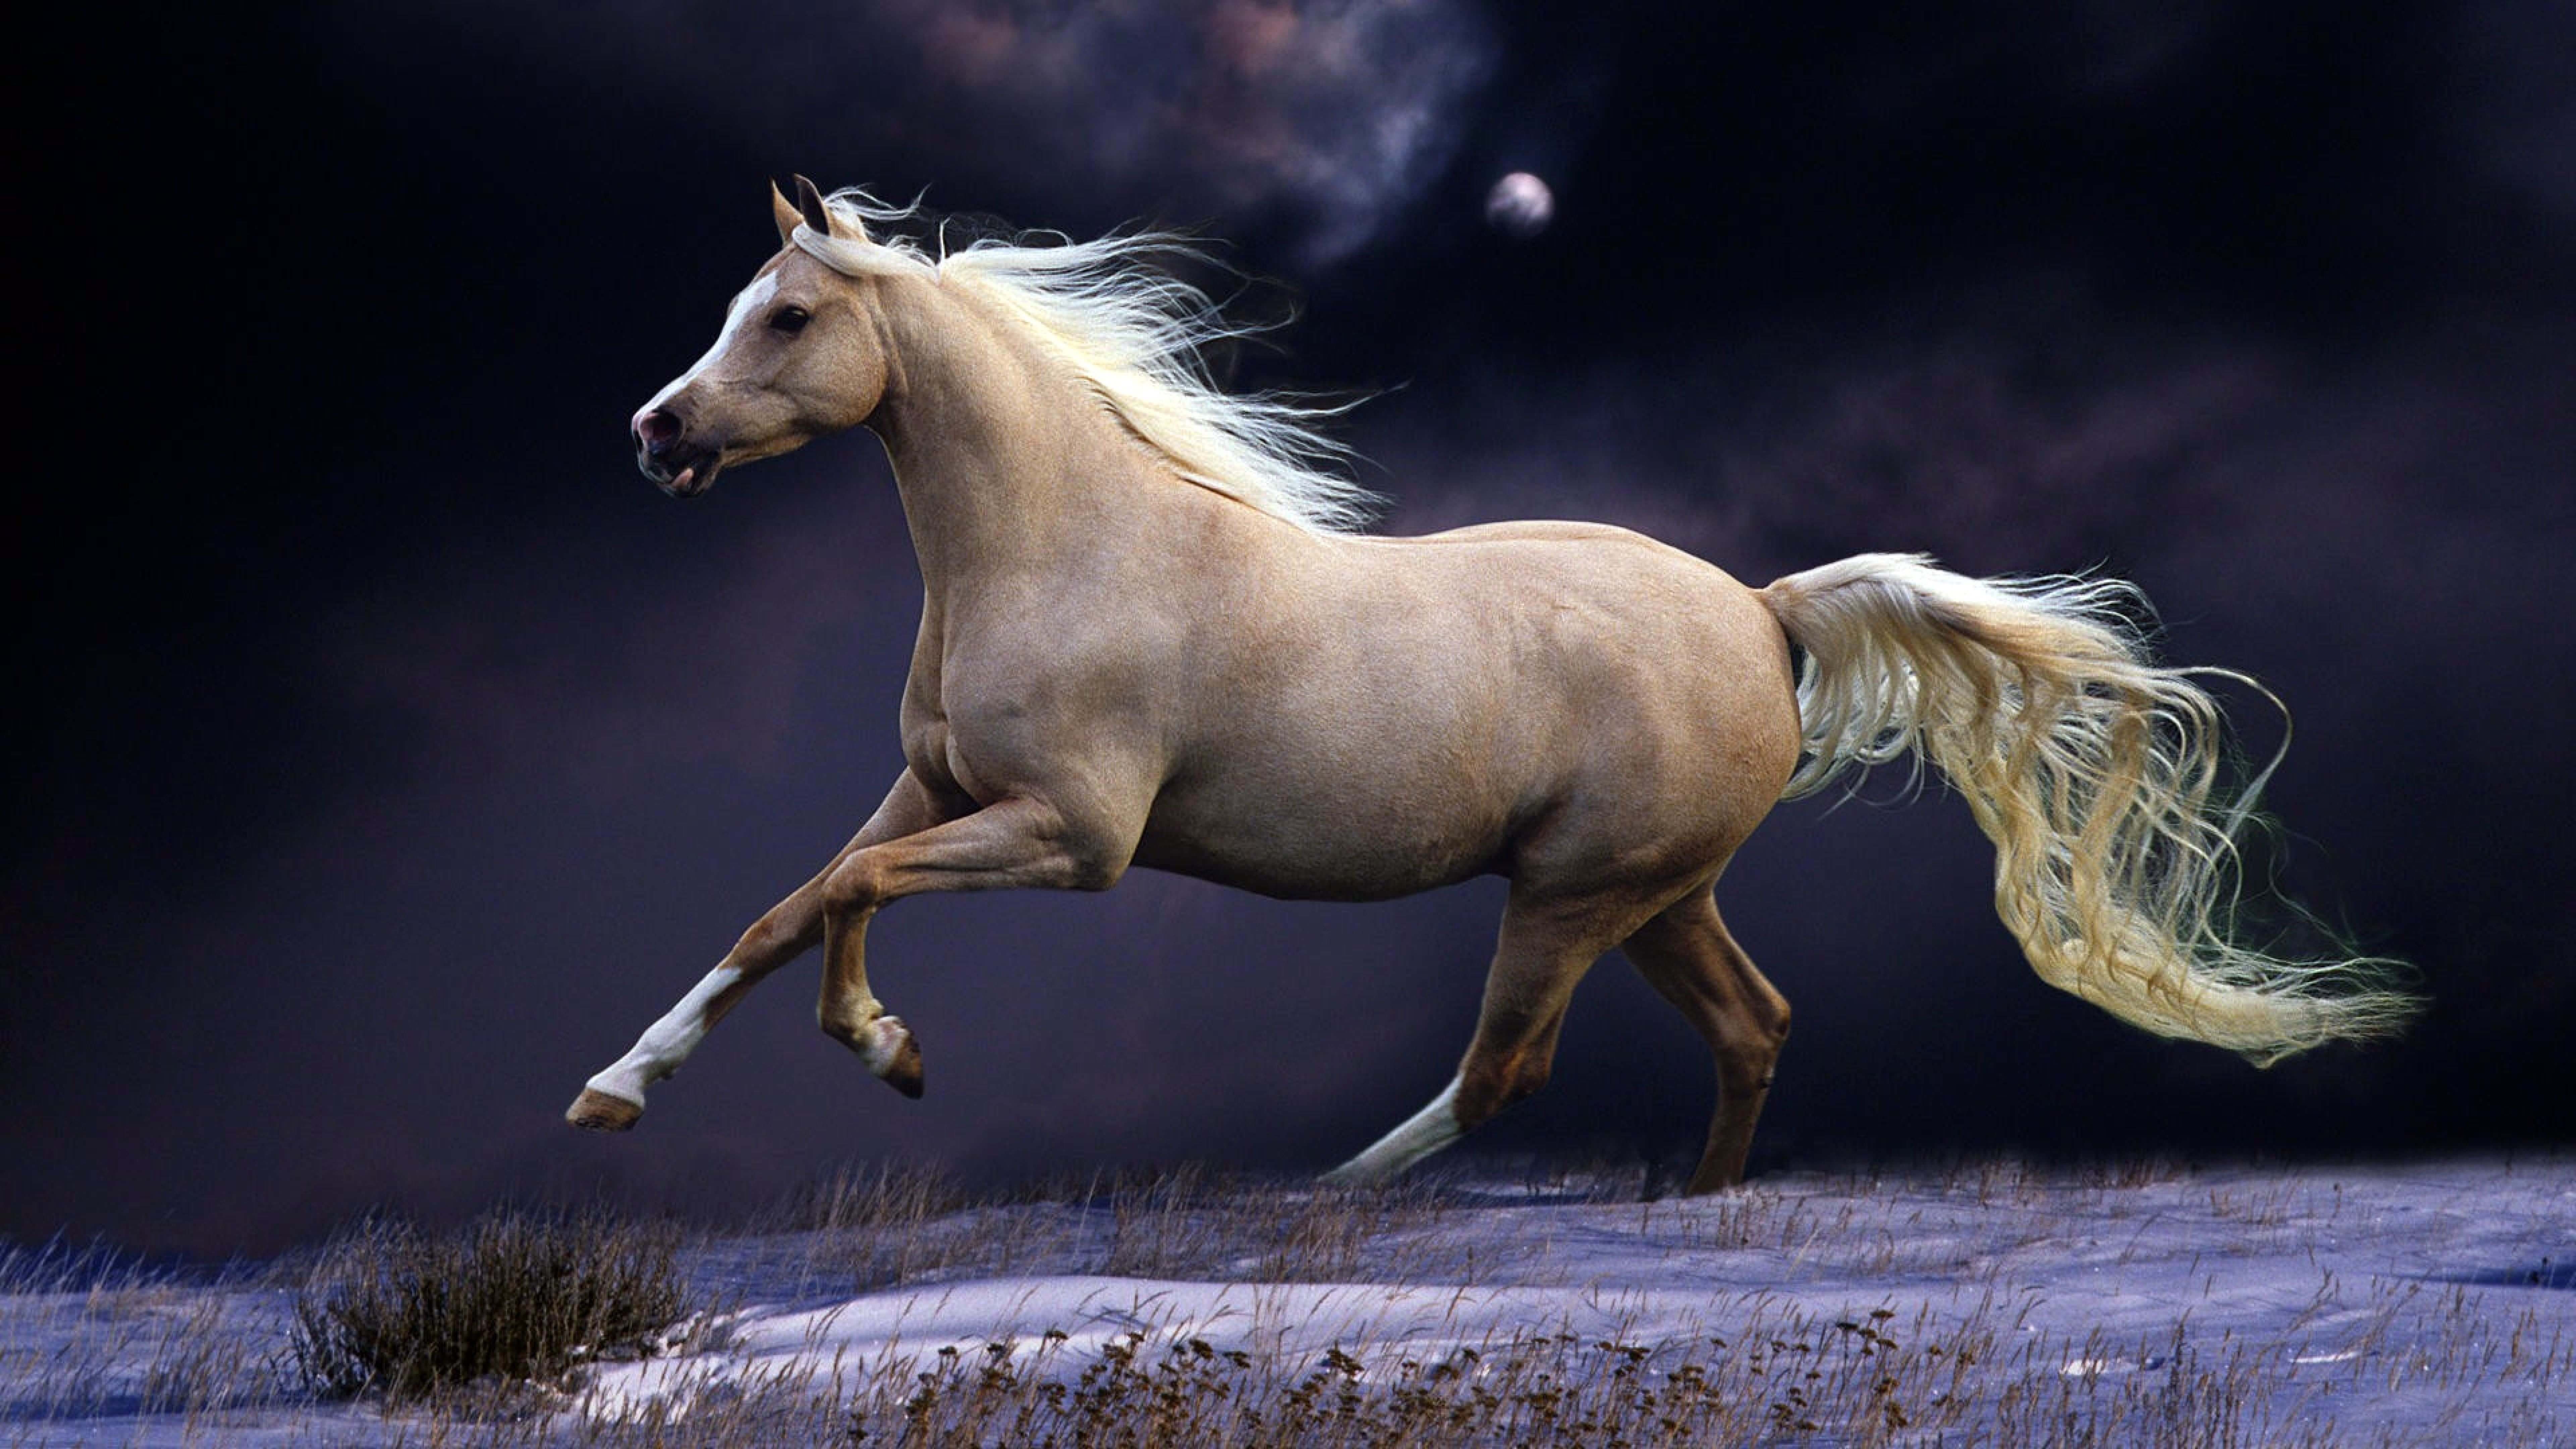 Horse 4k Wallpapers Top Free Horse 4k Backgrounds Wallpaperaccess